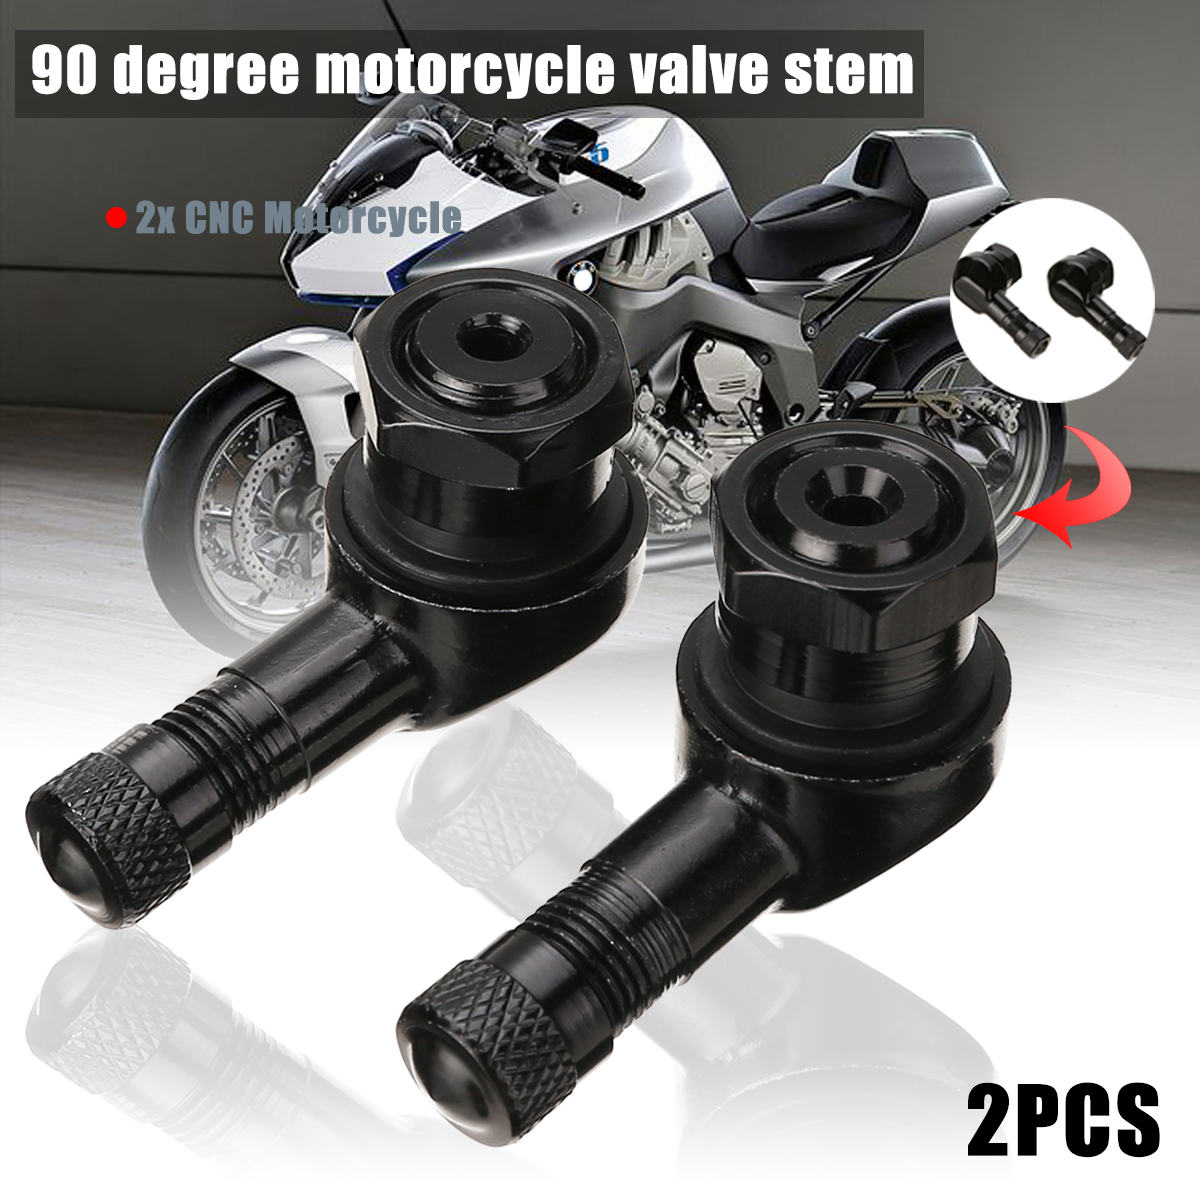 Wheels Tires & Parts 2pcs 10mm 11.3mm CNC Motorcycle Valve Stem 90 Degree Angle Wheel Tire Tubeless Valve Stems Aluminum